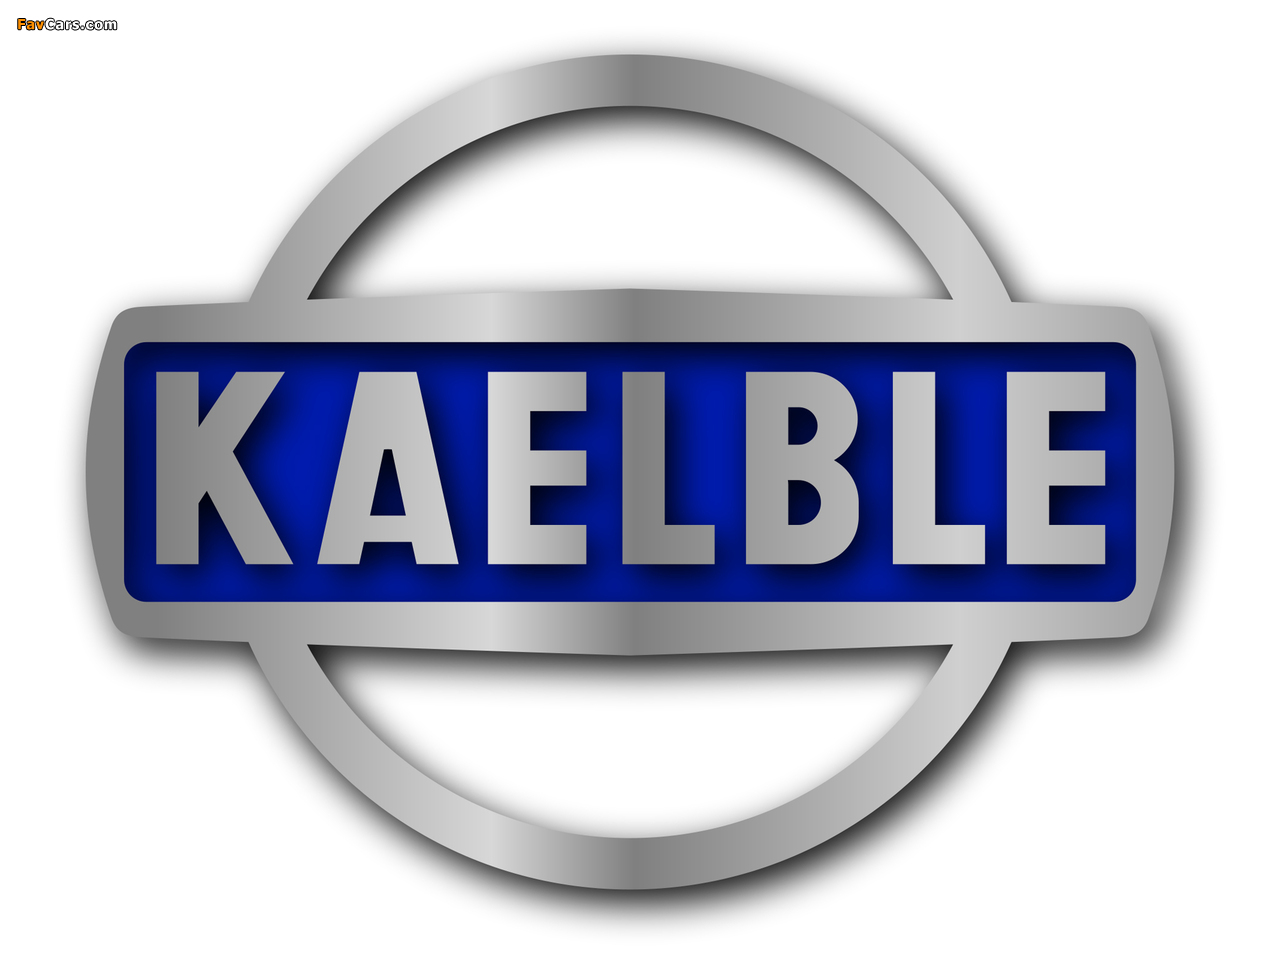 Pictures of Kaelble (1280 x 960)